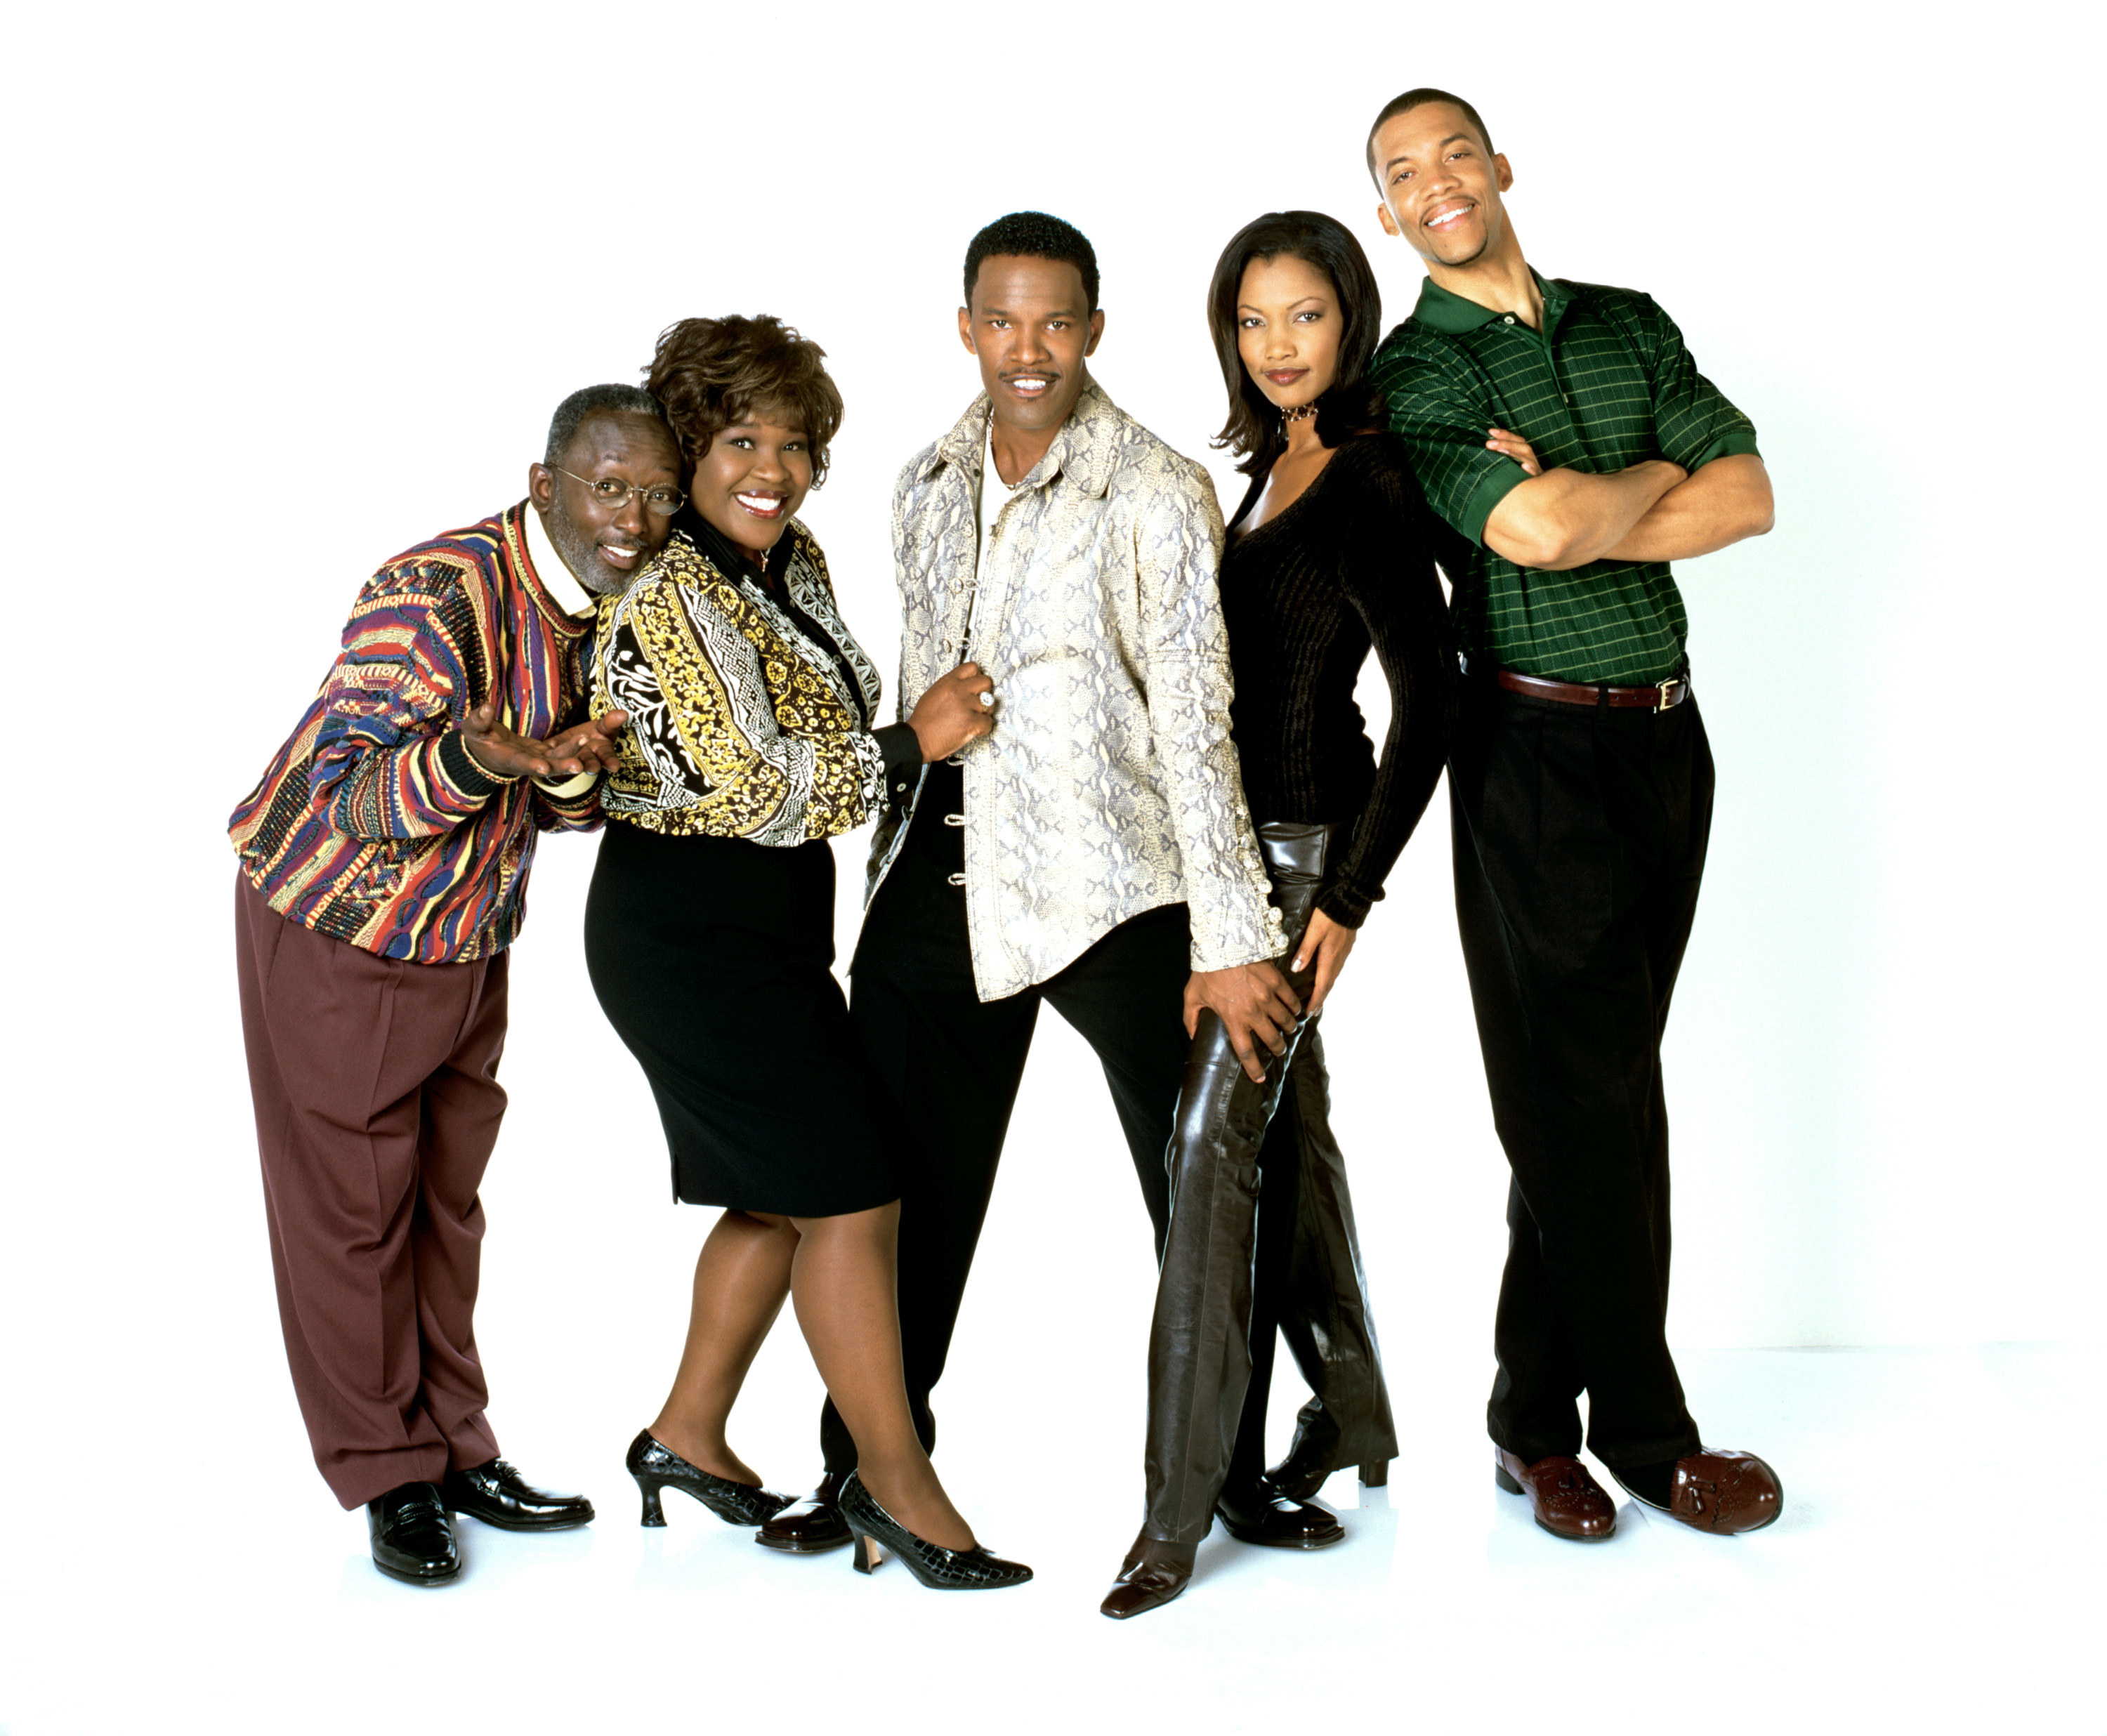 """The cast of the """"Jamie Foxx Show"""" pose for a photo shoot"""